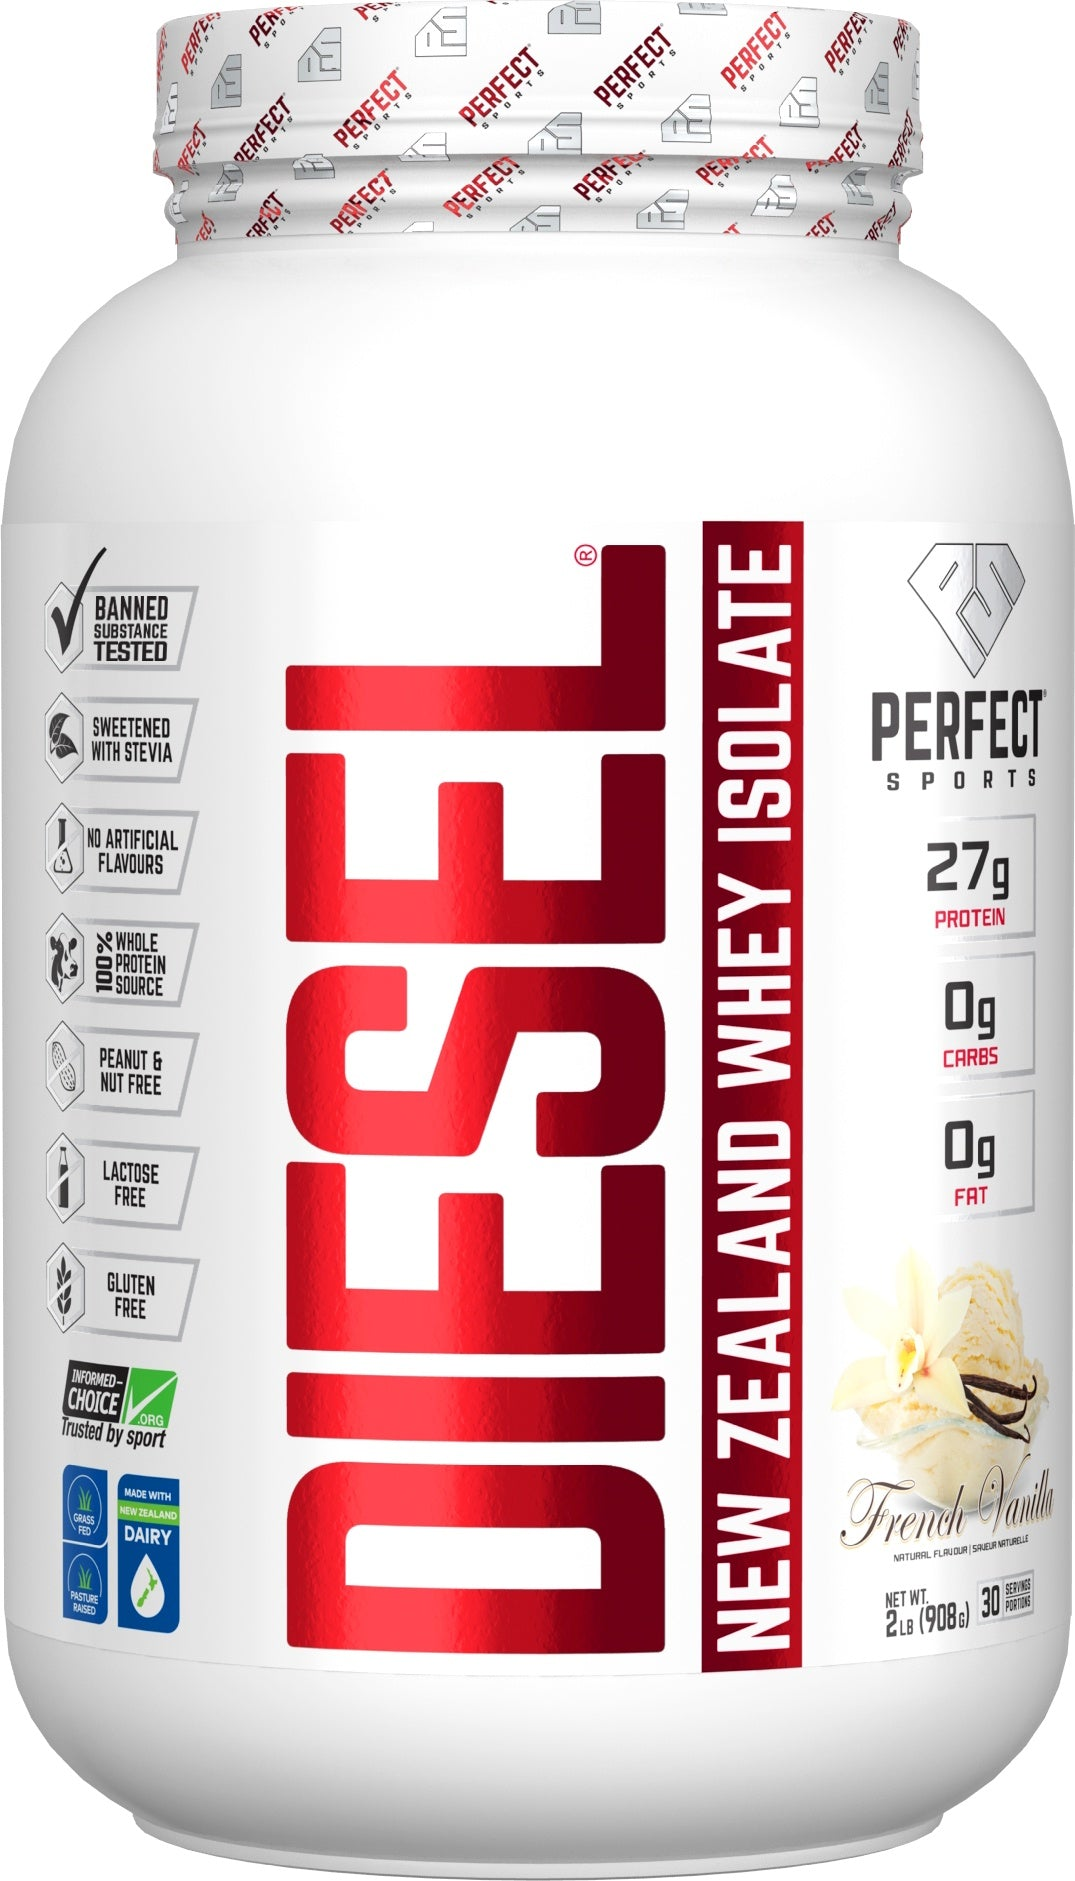 Supplements & Vitamins - Perfect Sports - Diesel Vanilla Whey Isolate, 908g